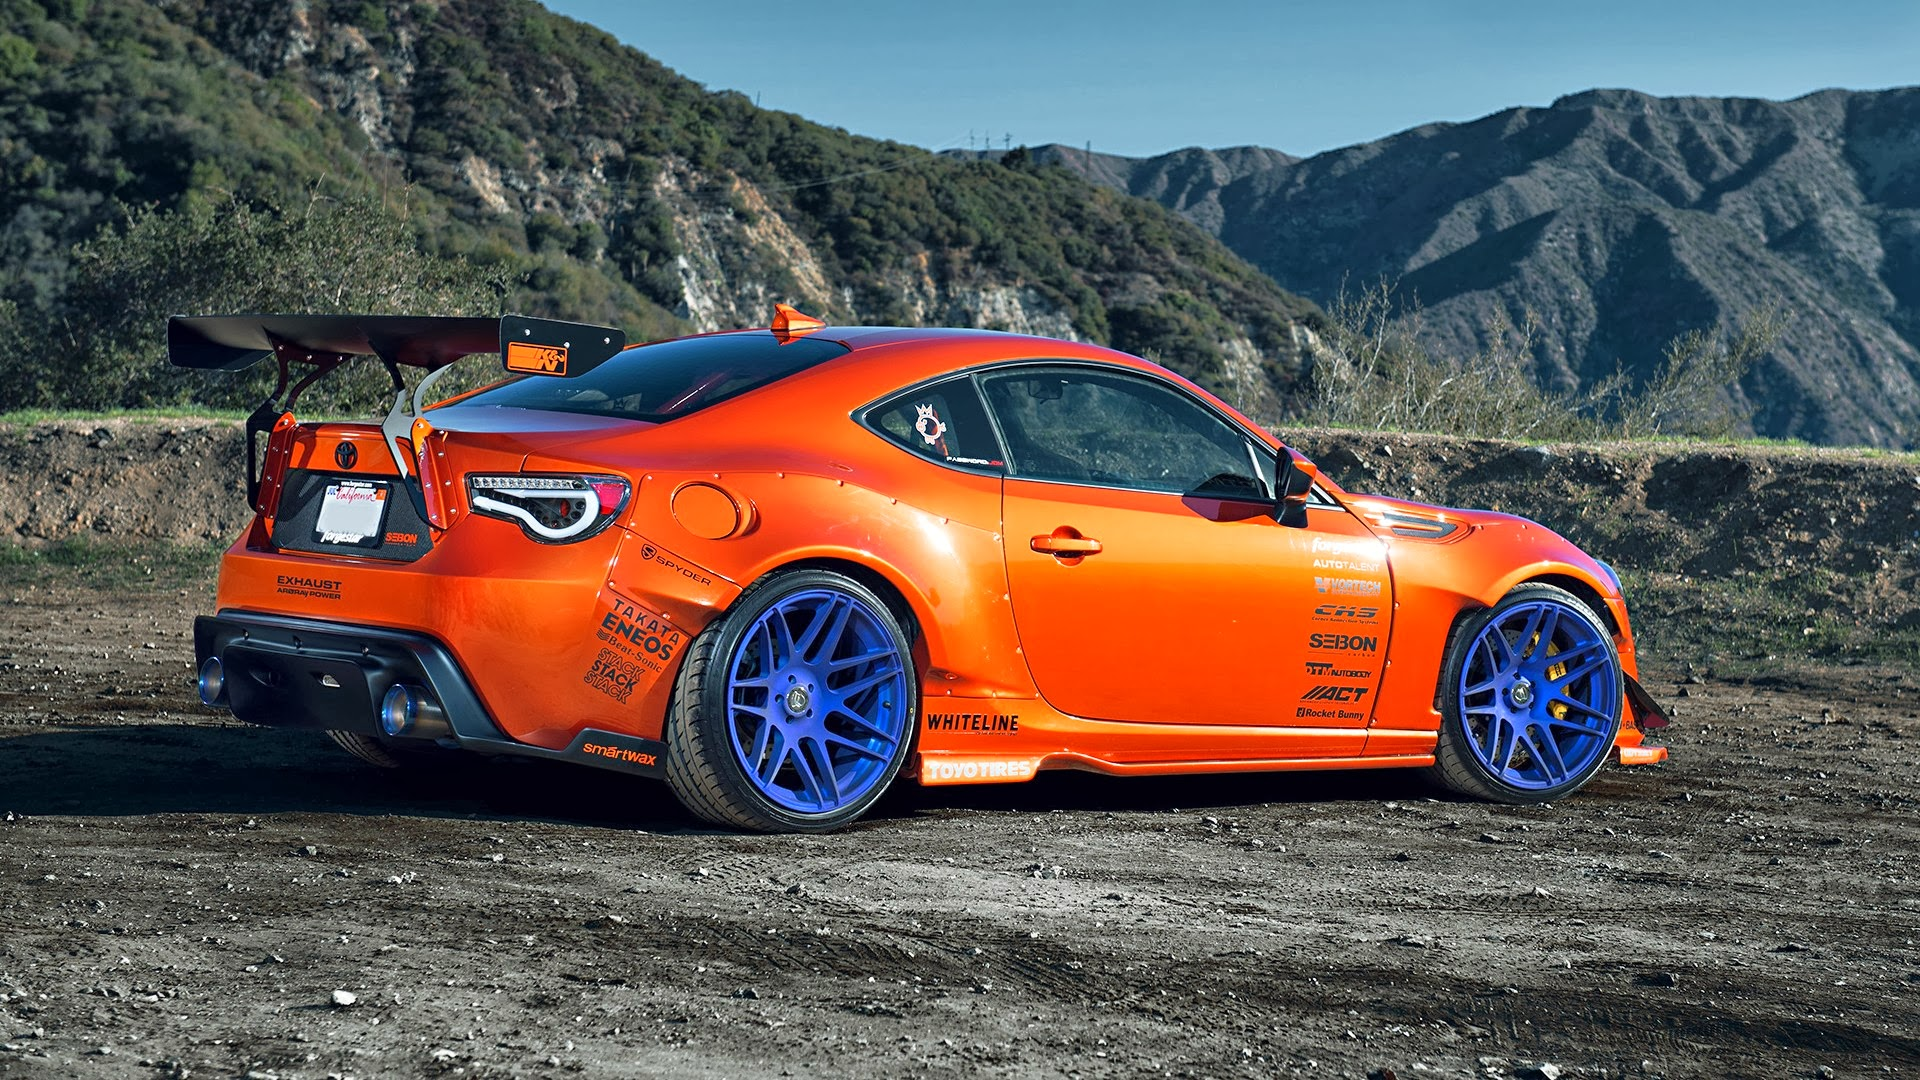 toyota gt86 tuning cars imagenes hd 1920x1080